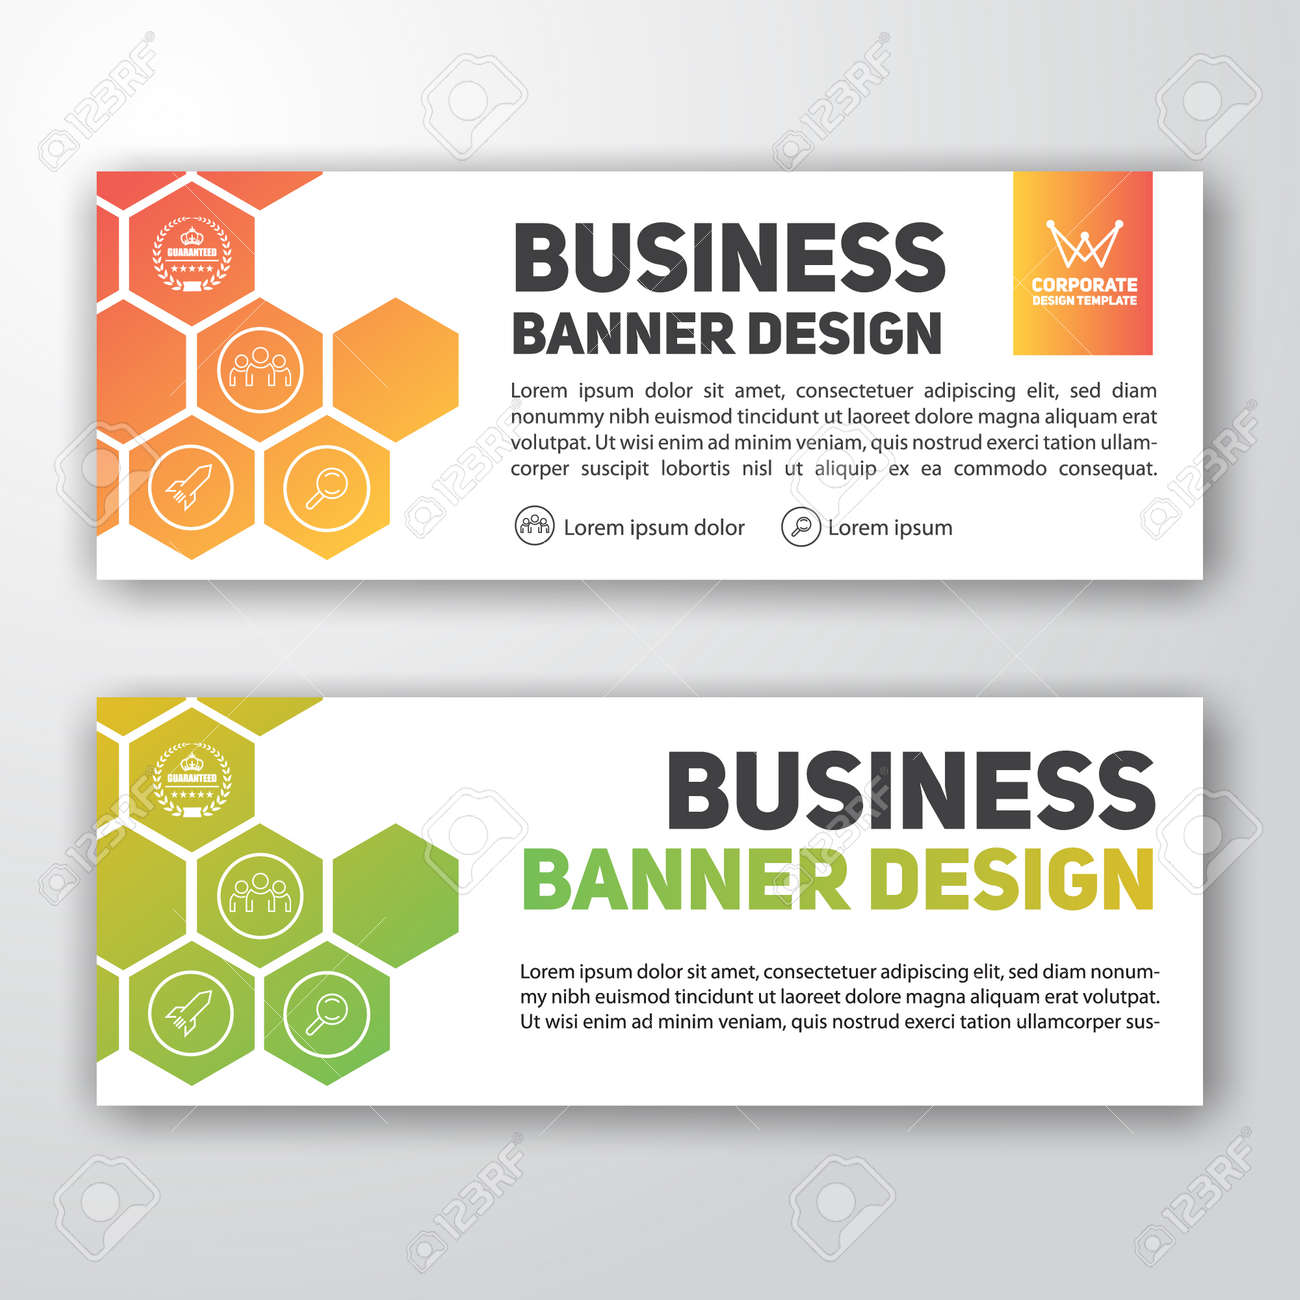 Modern corporate banner design for letterhead and web banner modern corporate banner design for letterhead and web banner stock vector 84399493 spiritdancerdesigns Image collections